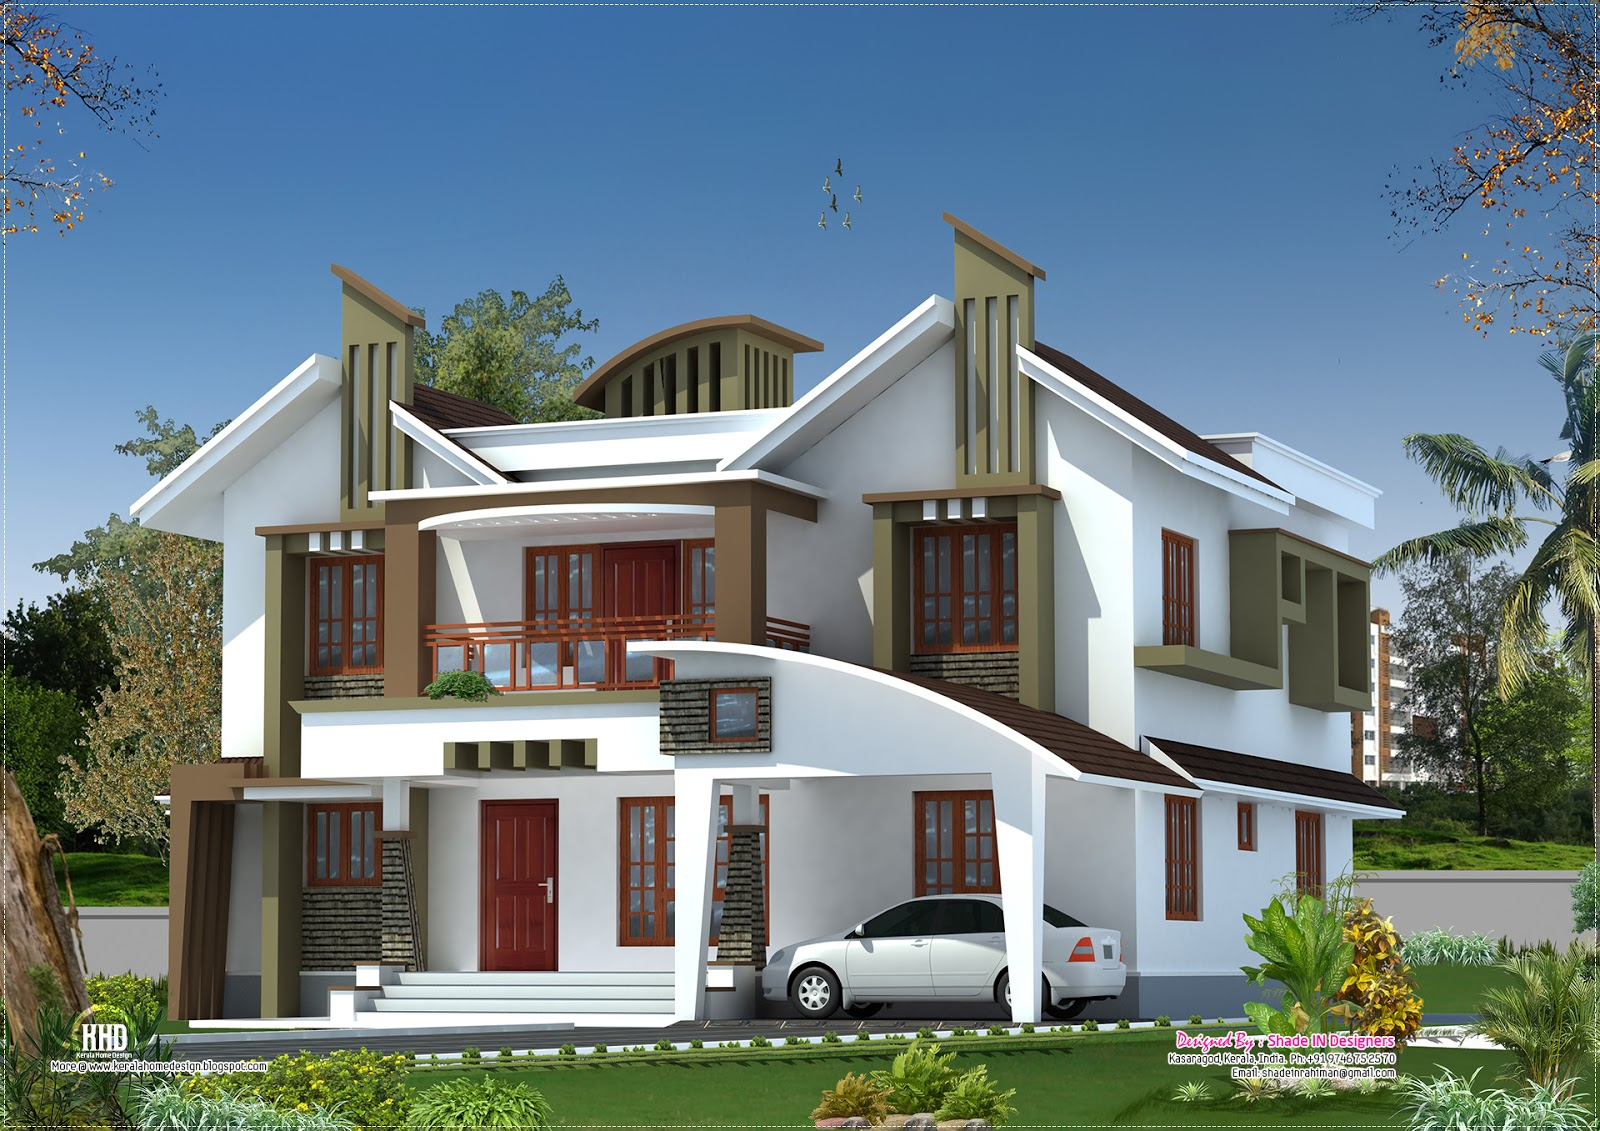 Modern house elevation from Kasaragod, Kerala